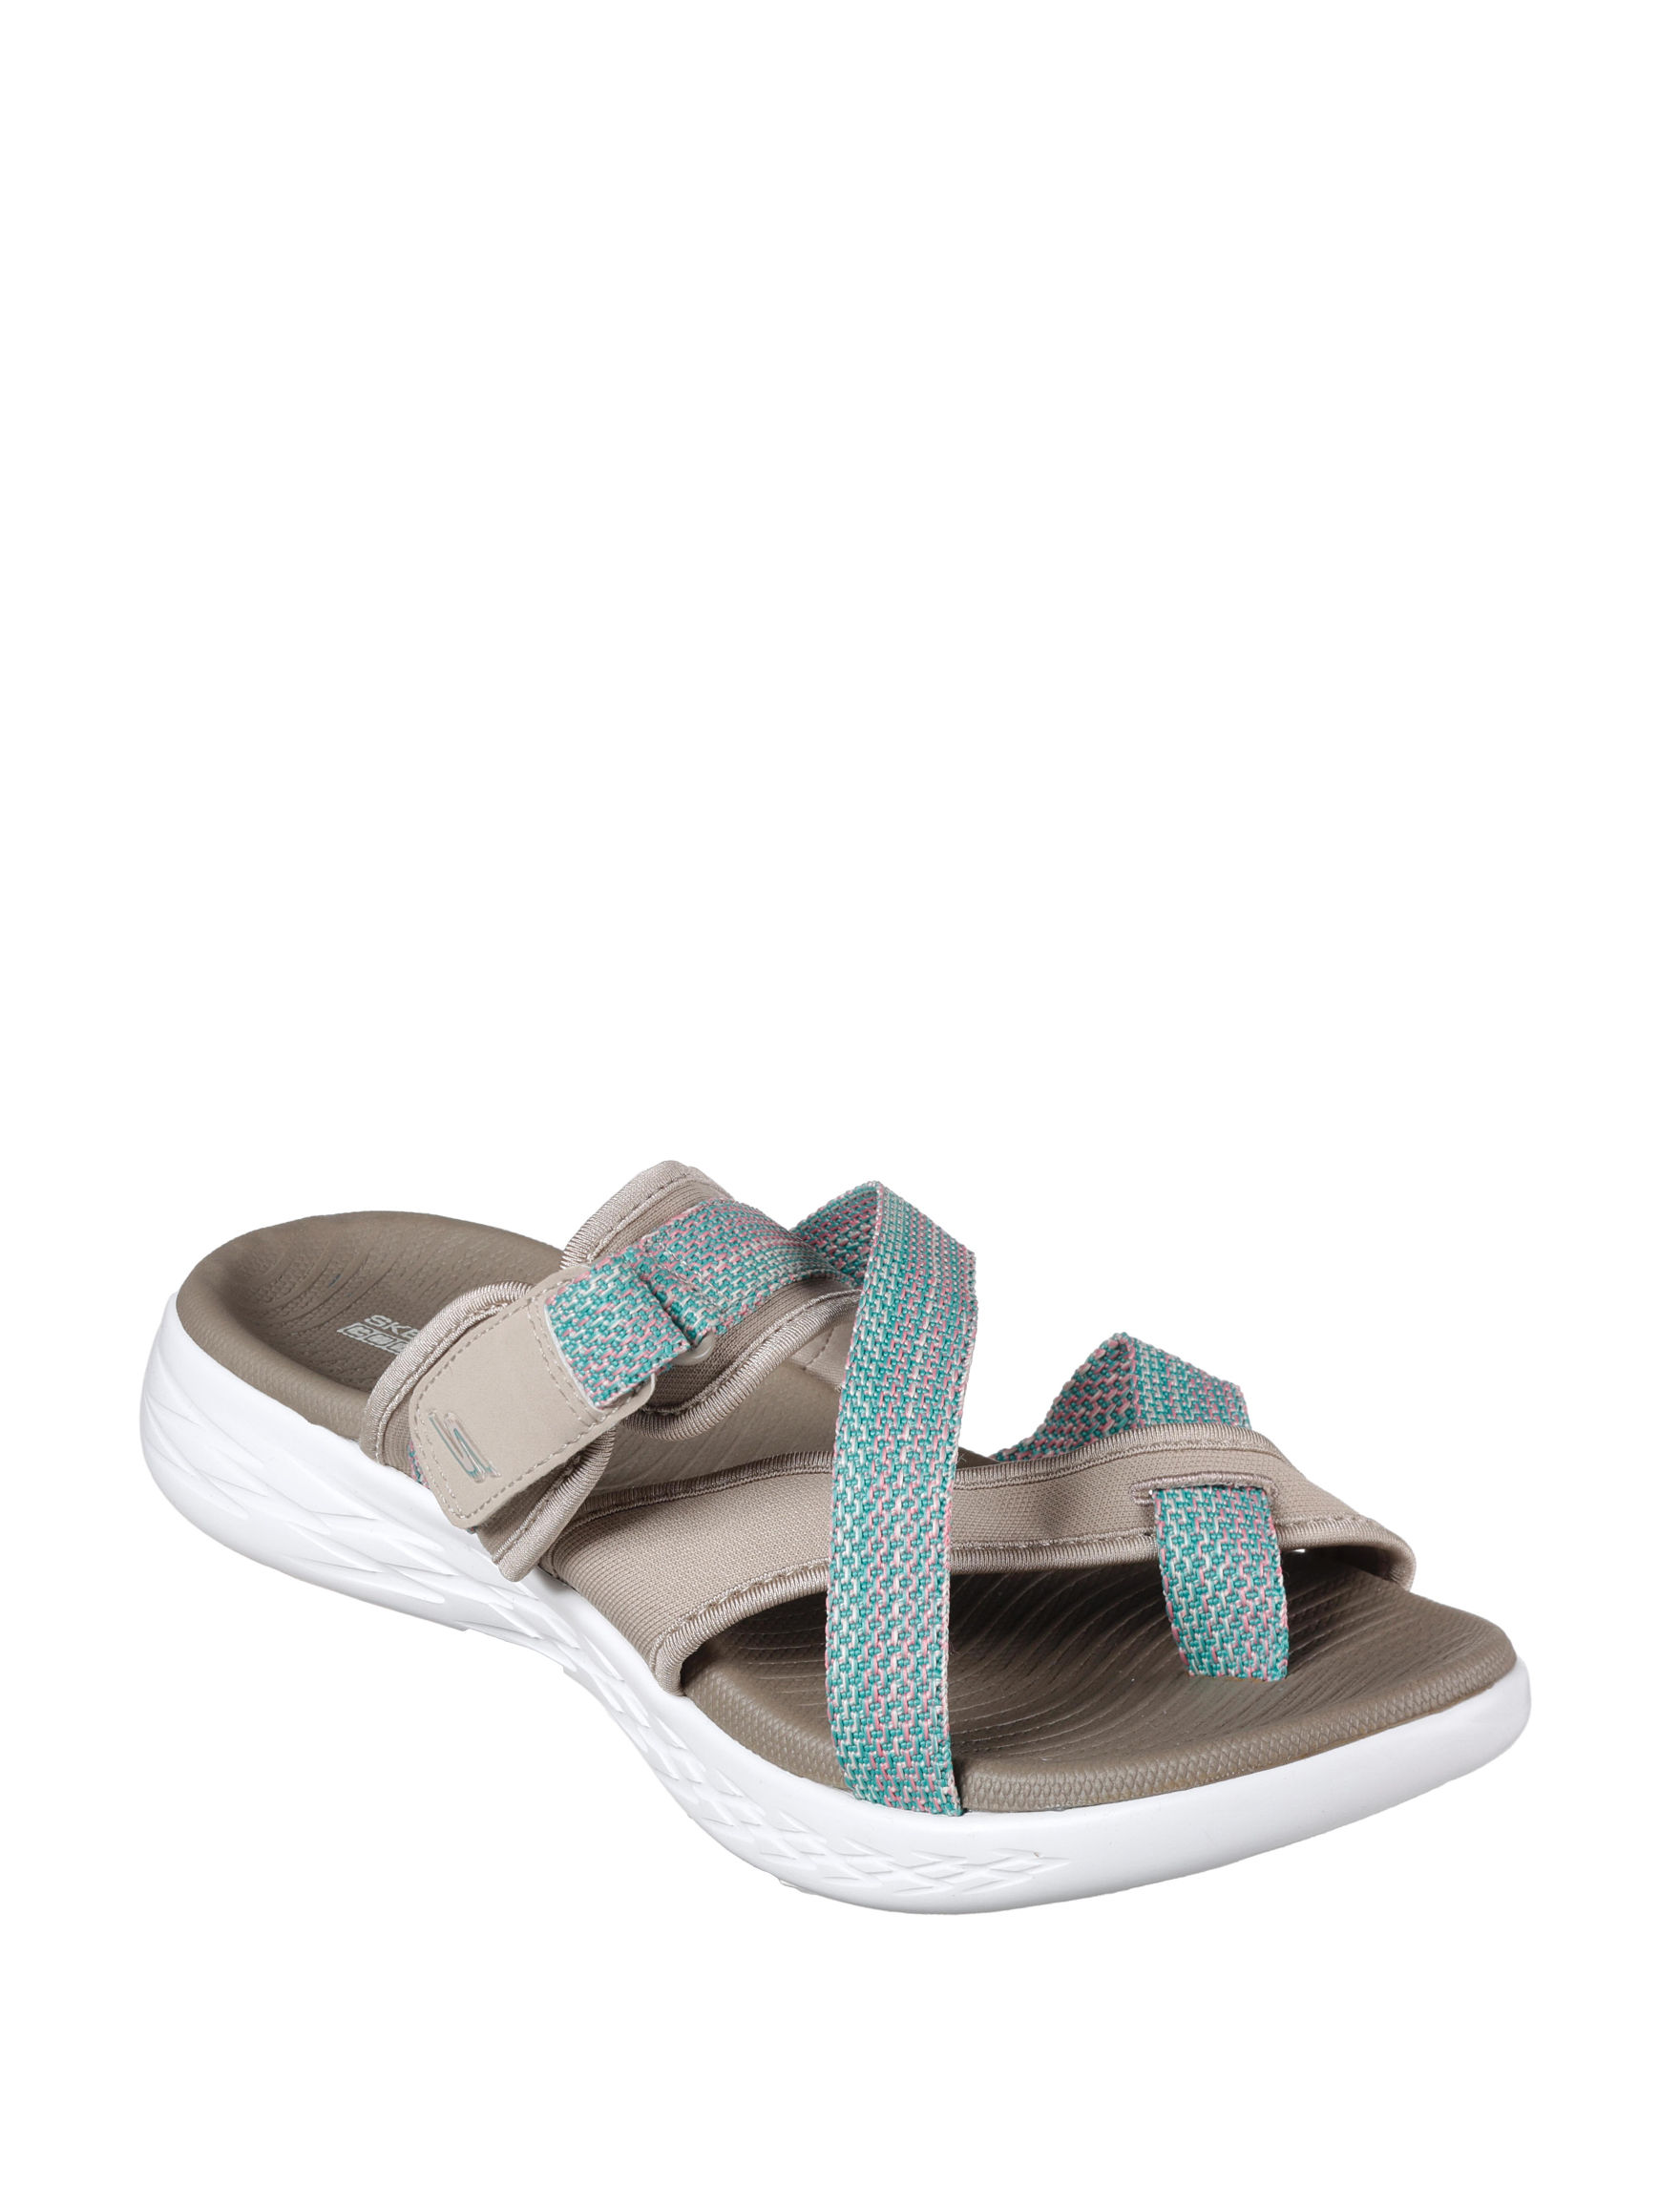 Skechers Taupe Sport Sandals